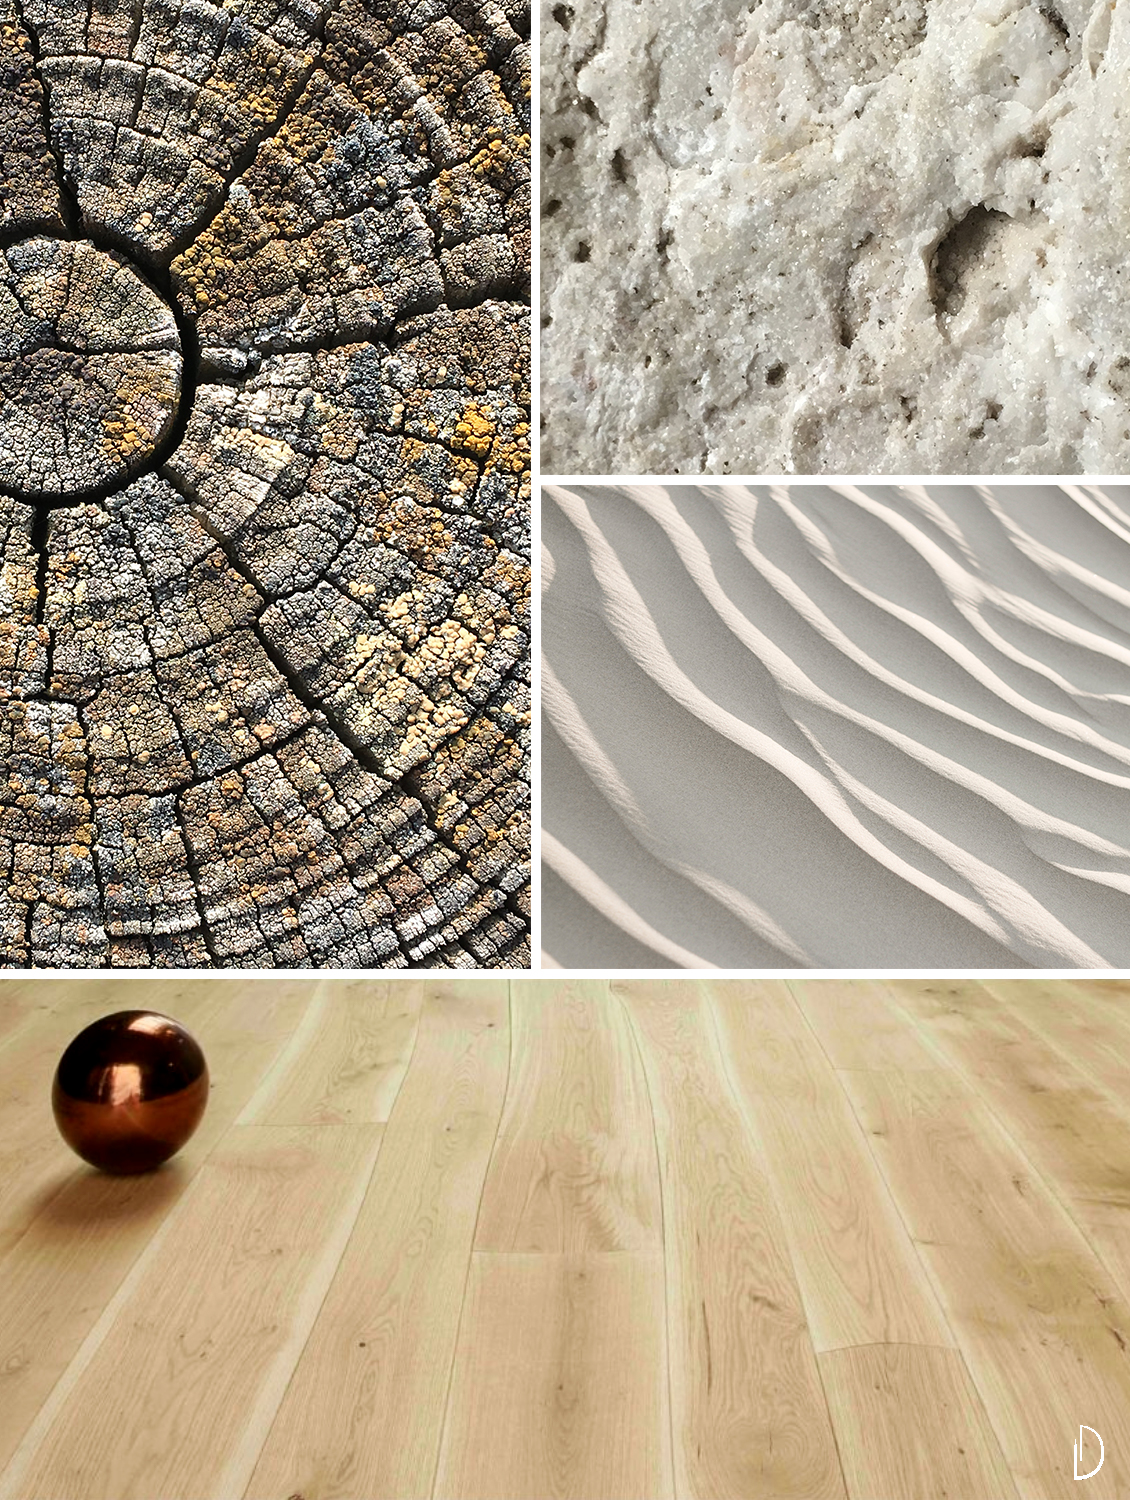 Moodboard depicting natural textures: a wood flooring, the close-up of a tree trunk, an expanse of sand and the detail of a stone texture.